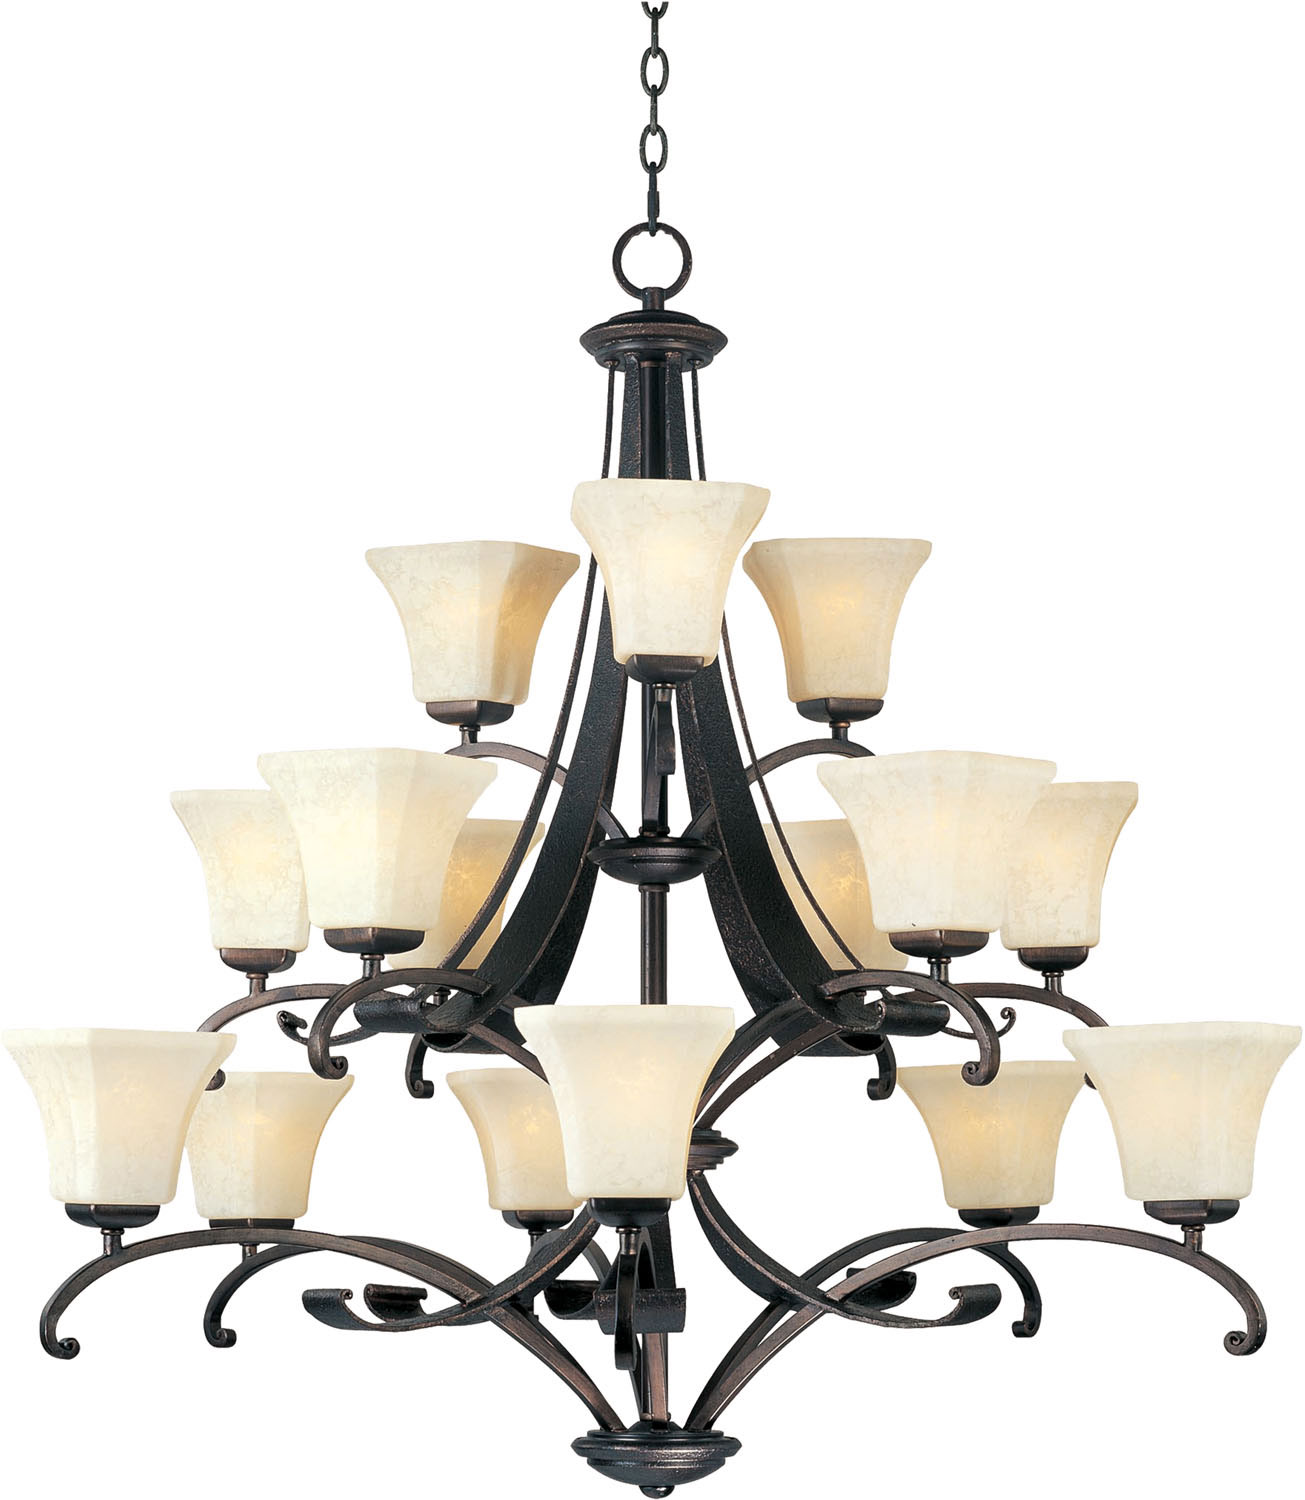 15 Light Chandelier from the Oak Harbor collection by Maxim 21067FLRB